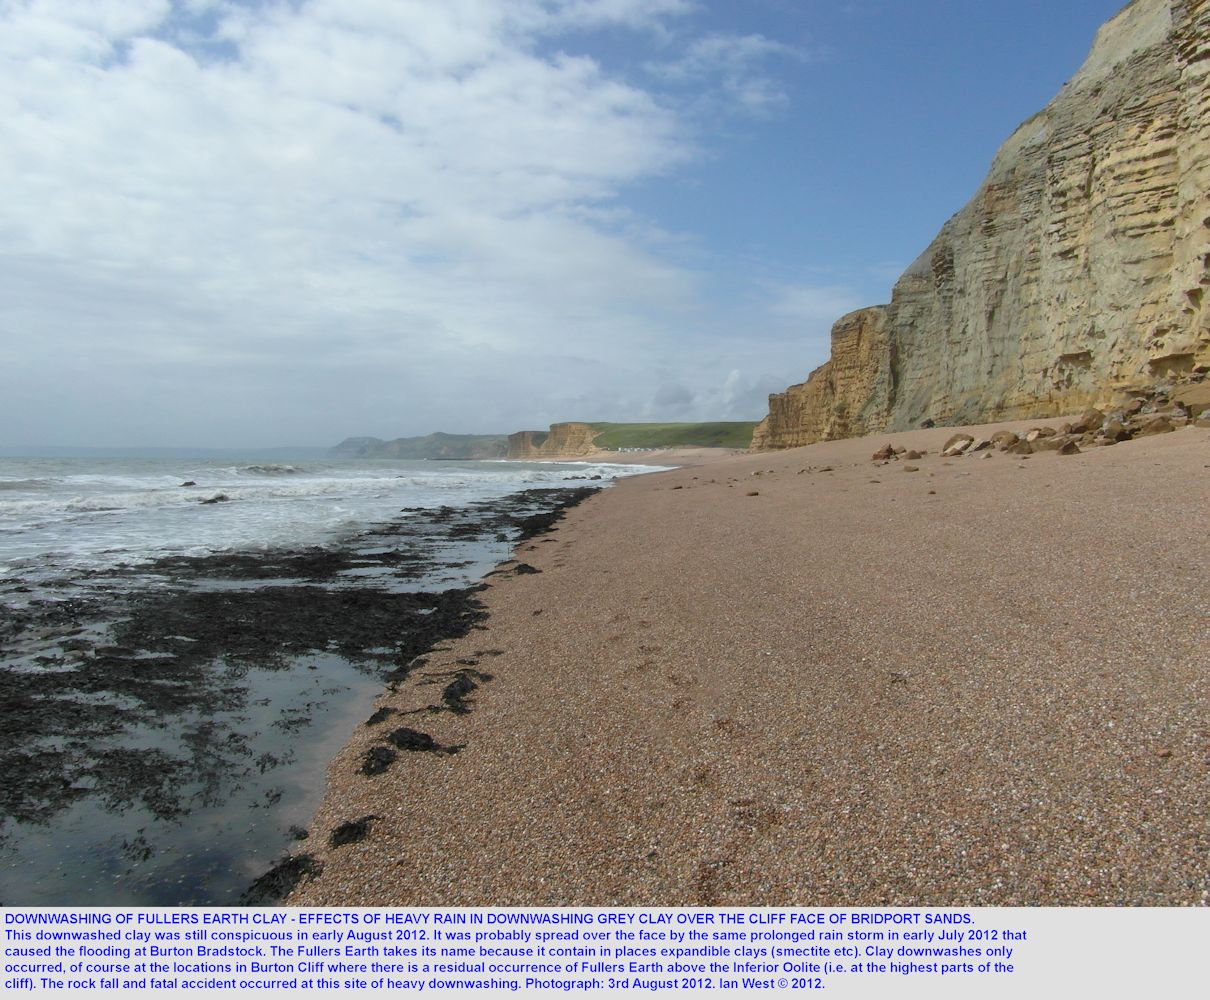 An area of clay downwashed from the Fullers Earth, western part of Burton Cliff, Burton Bradstock, Dorset, 3rd August 2012